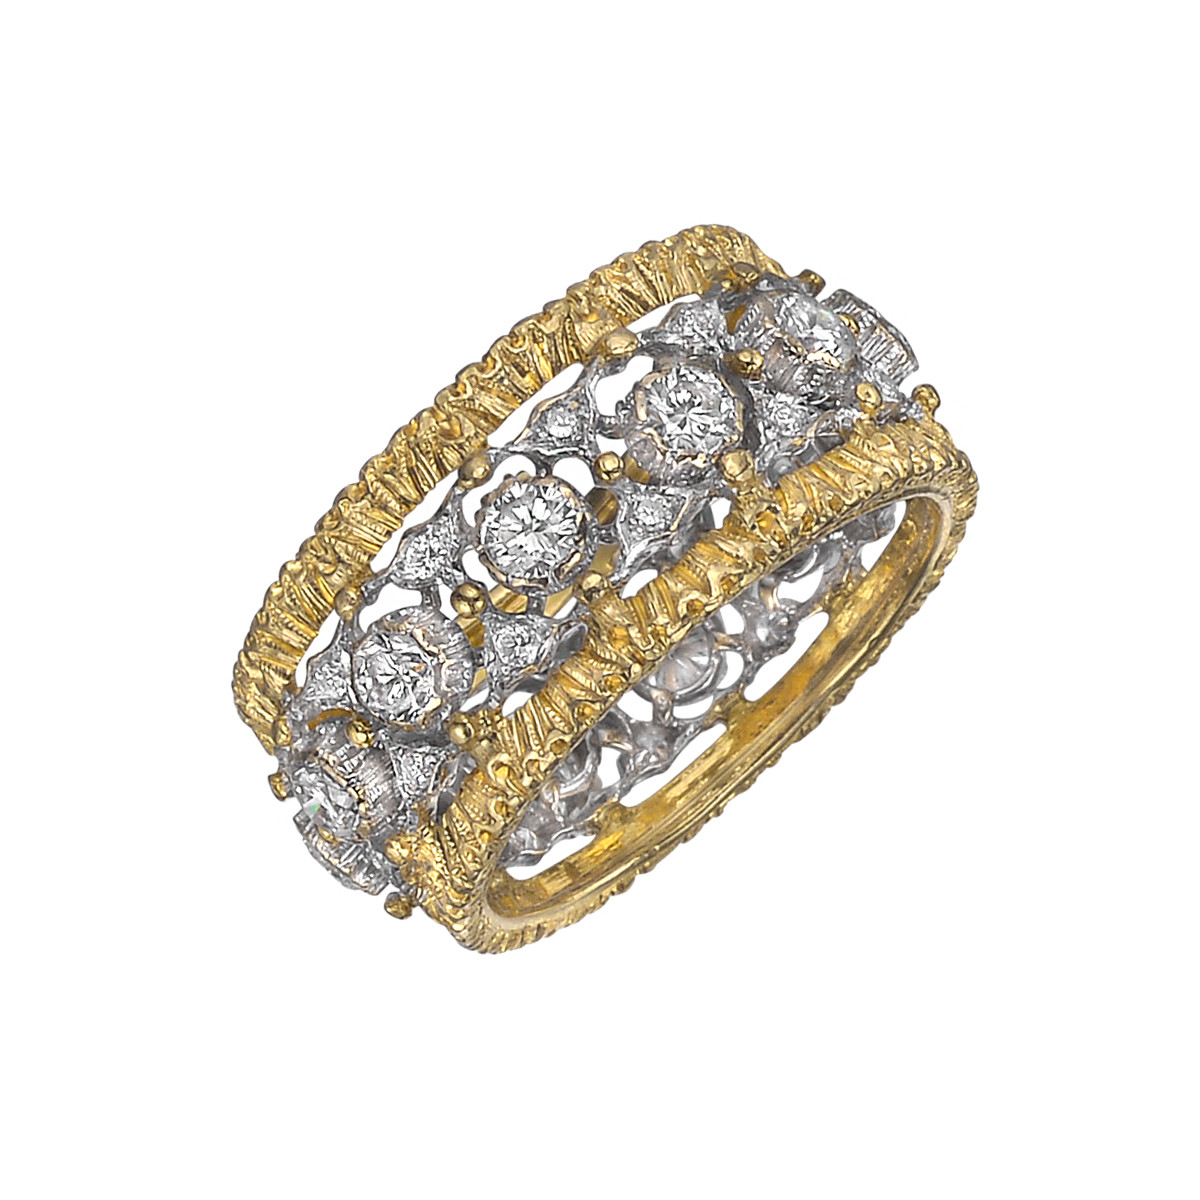 18k Gold & Diamond Openwork Band Ring